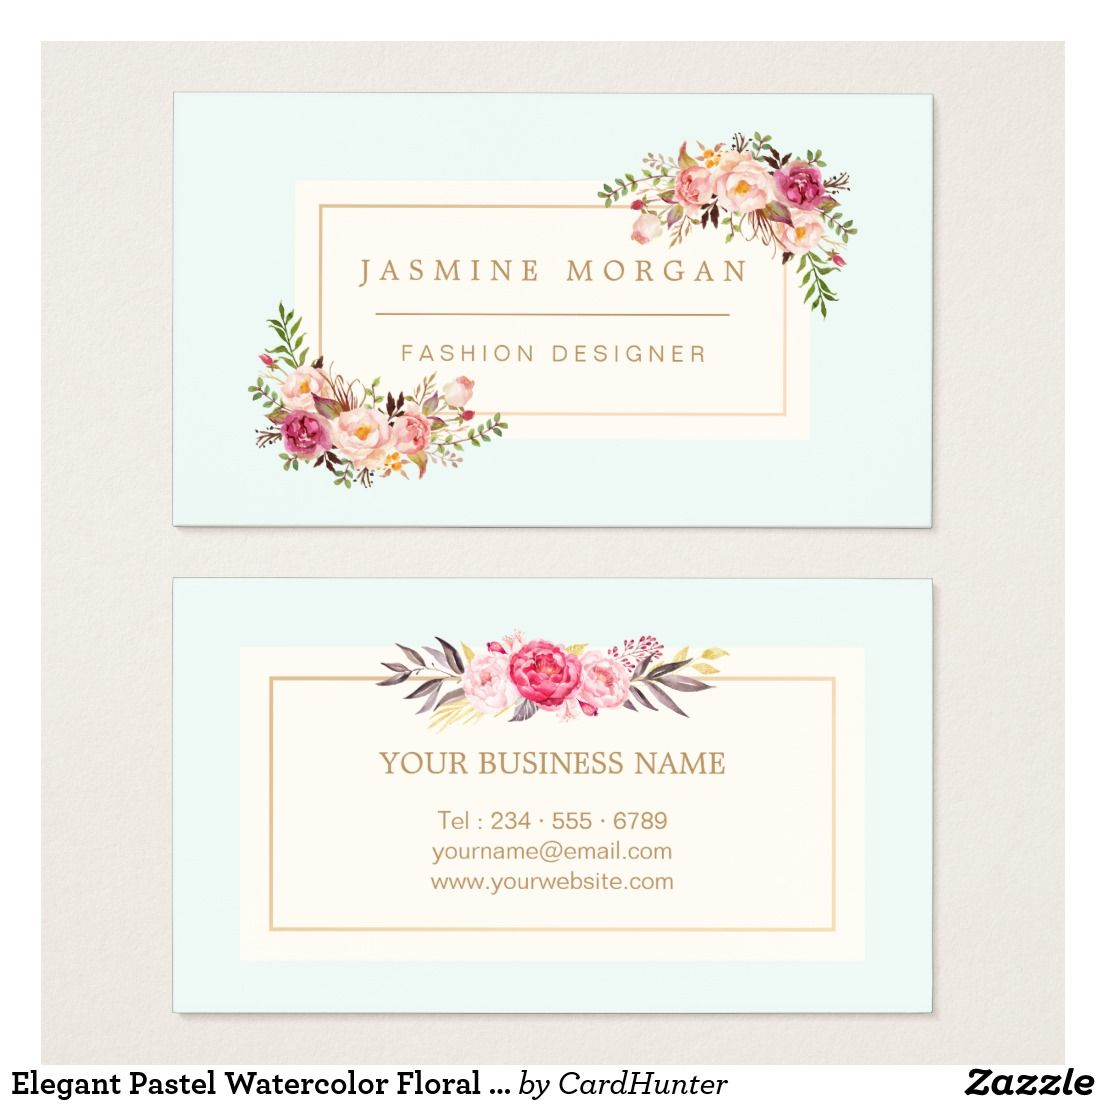 Elegant Pastel Watercolor Floral Boutique Decor Business Card ...